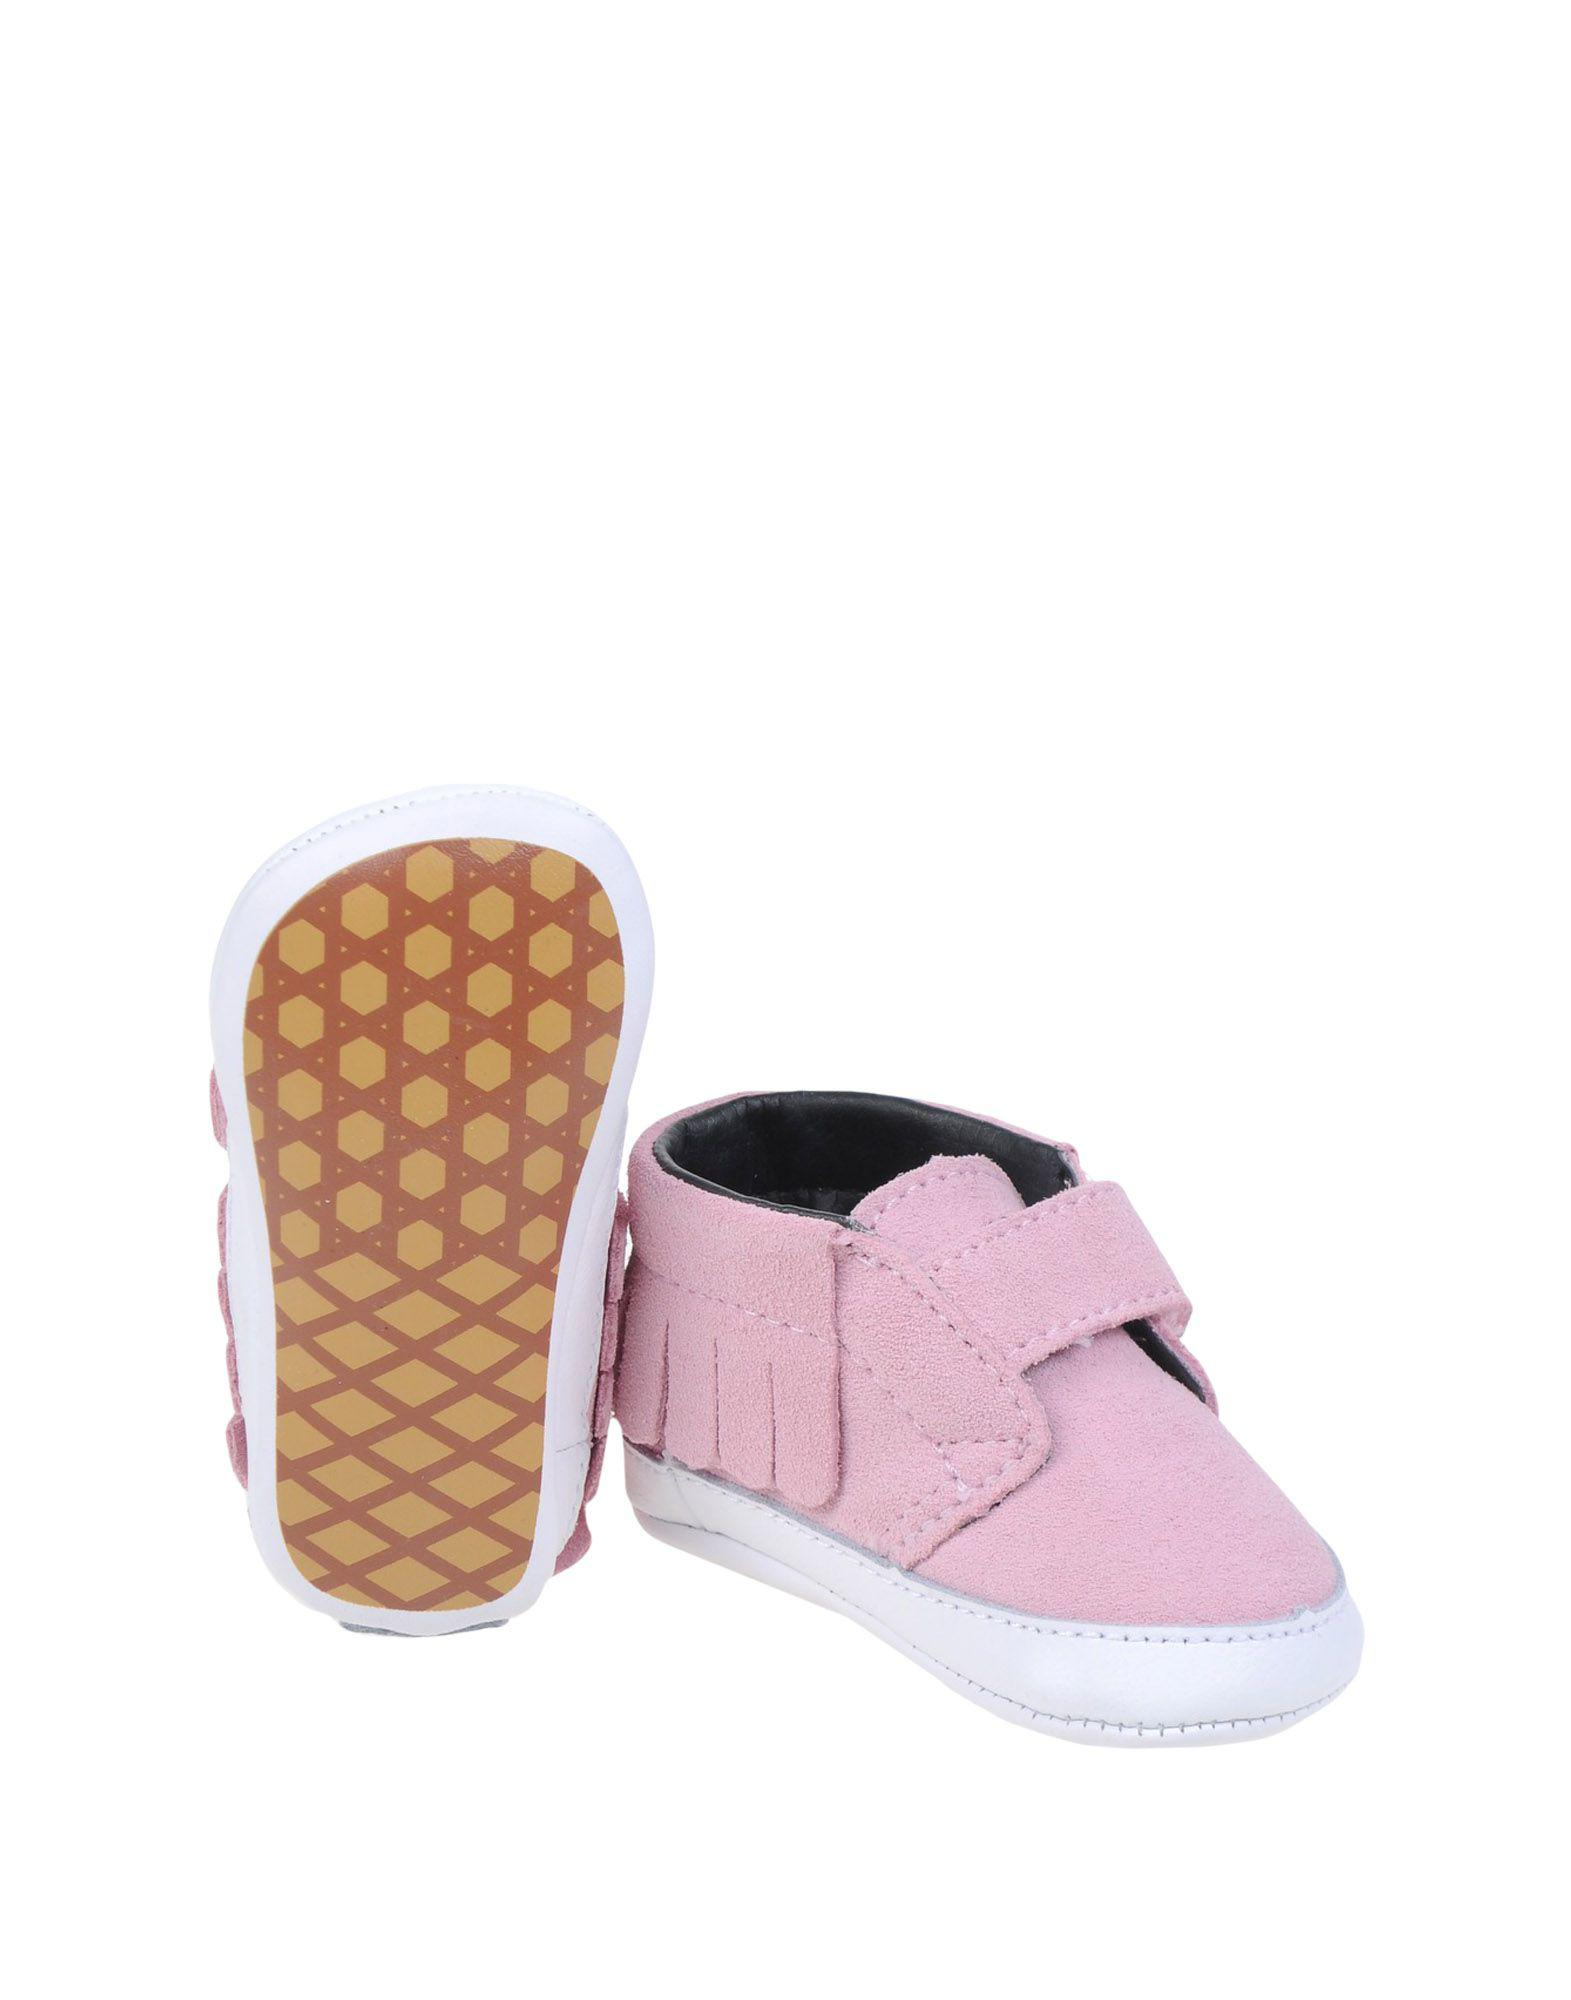 Newborn Shoes Vans Vans Suede Newborn Shoes In Pink Lyst